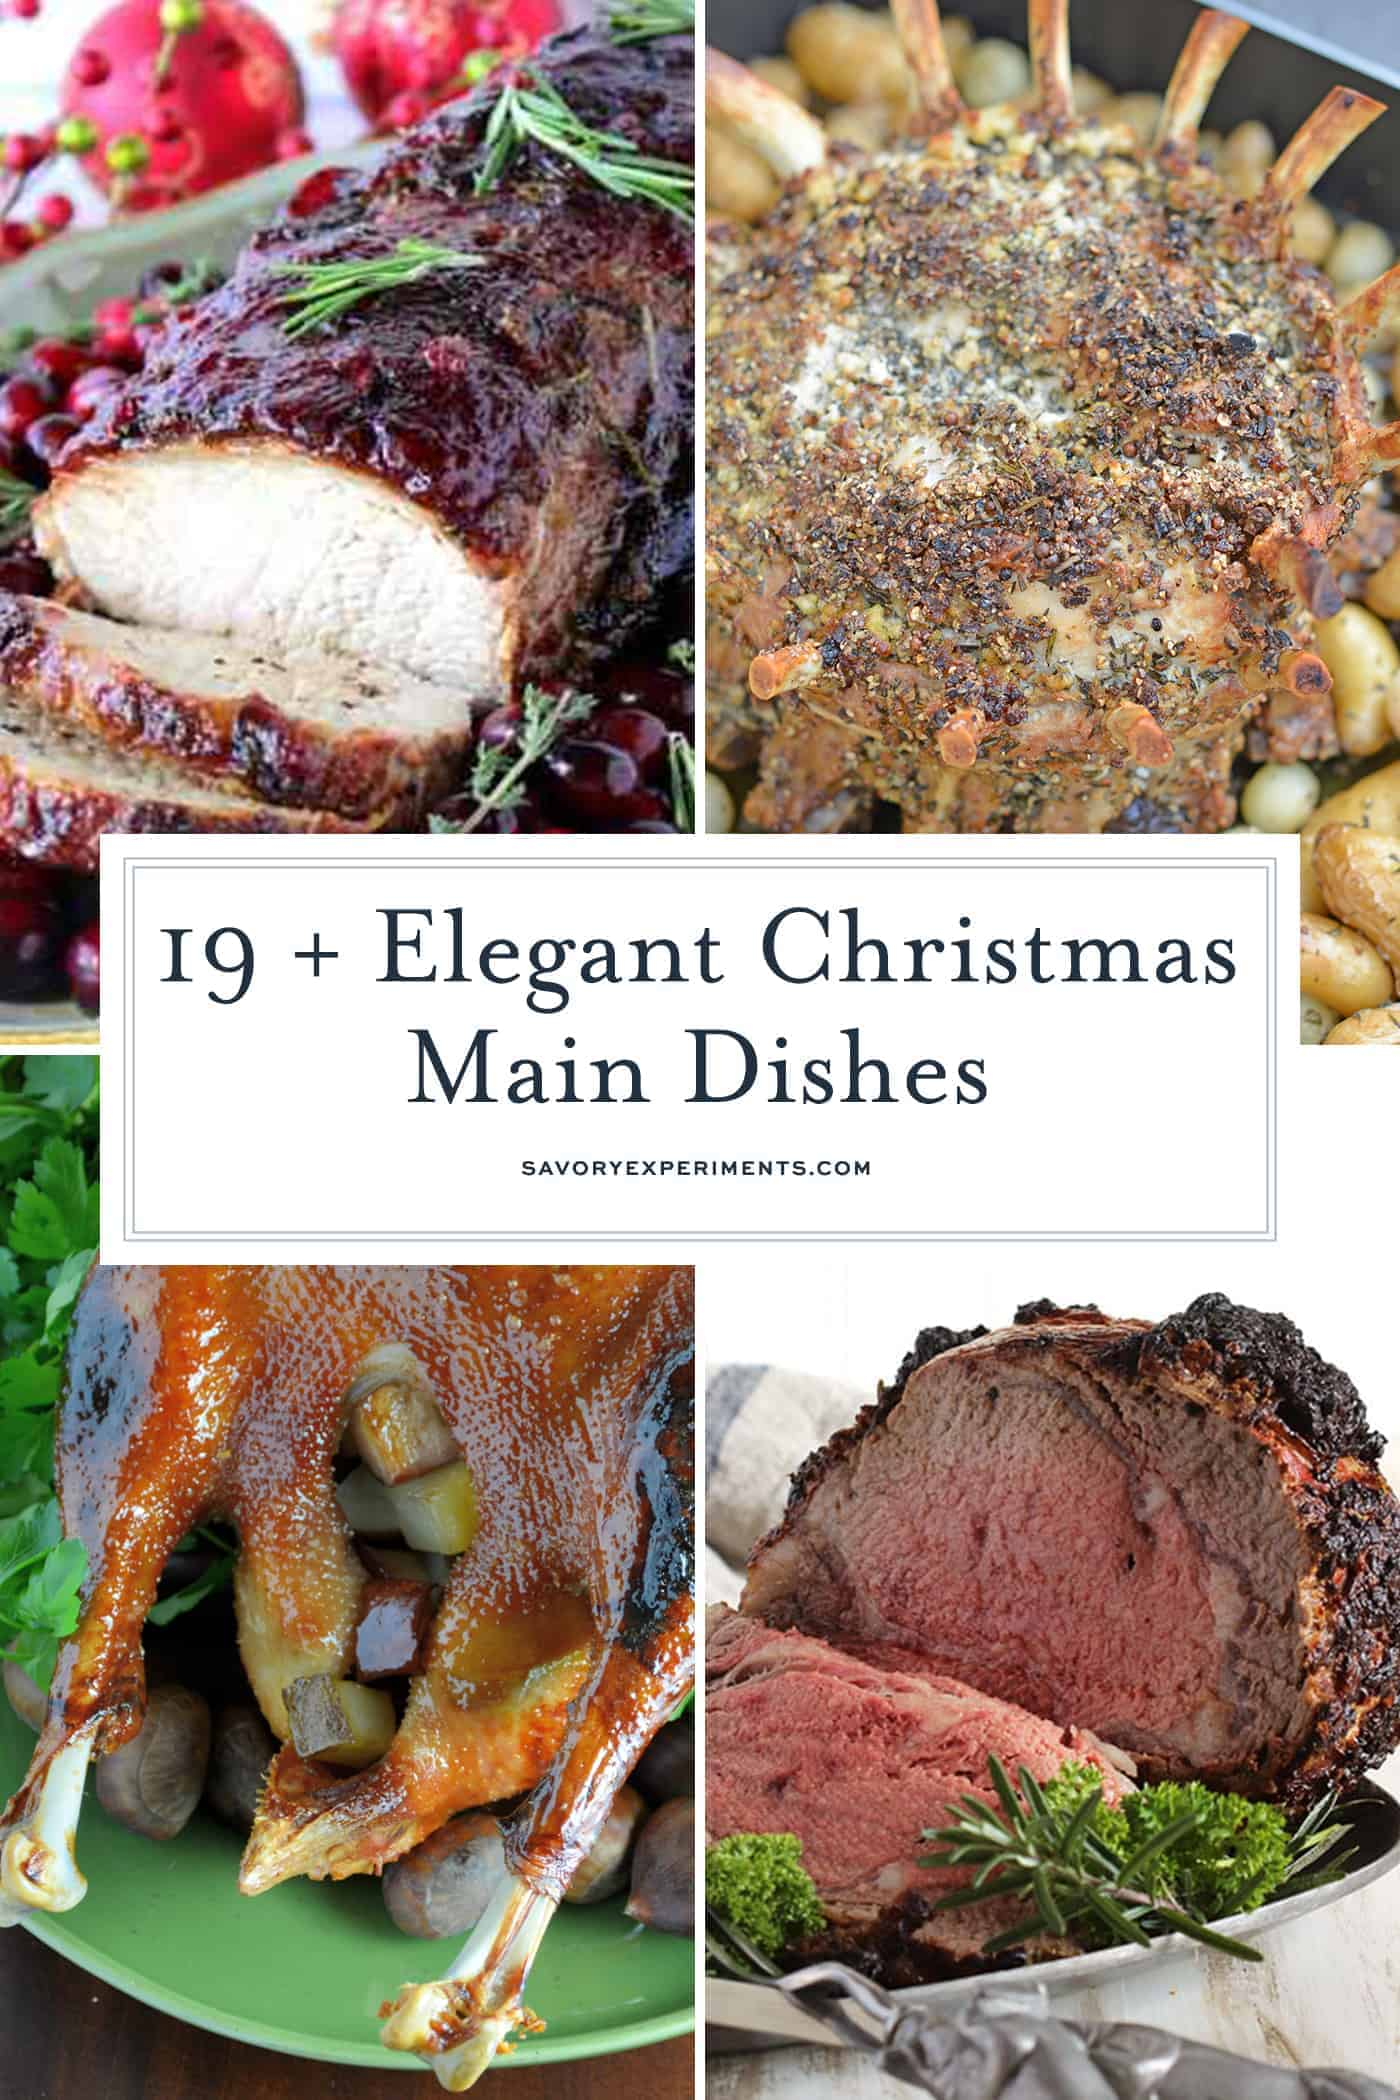 Festive Holiday Main Dish Recipes